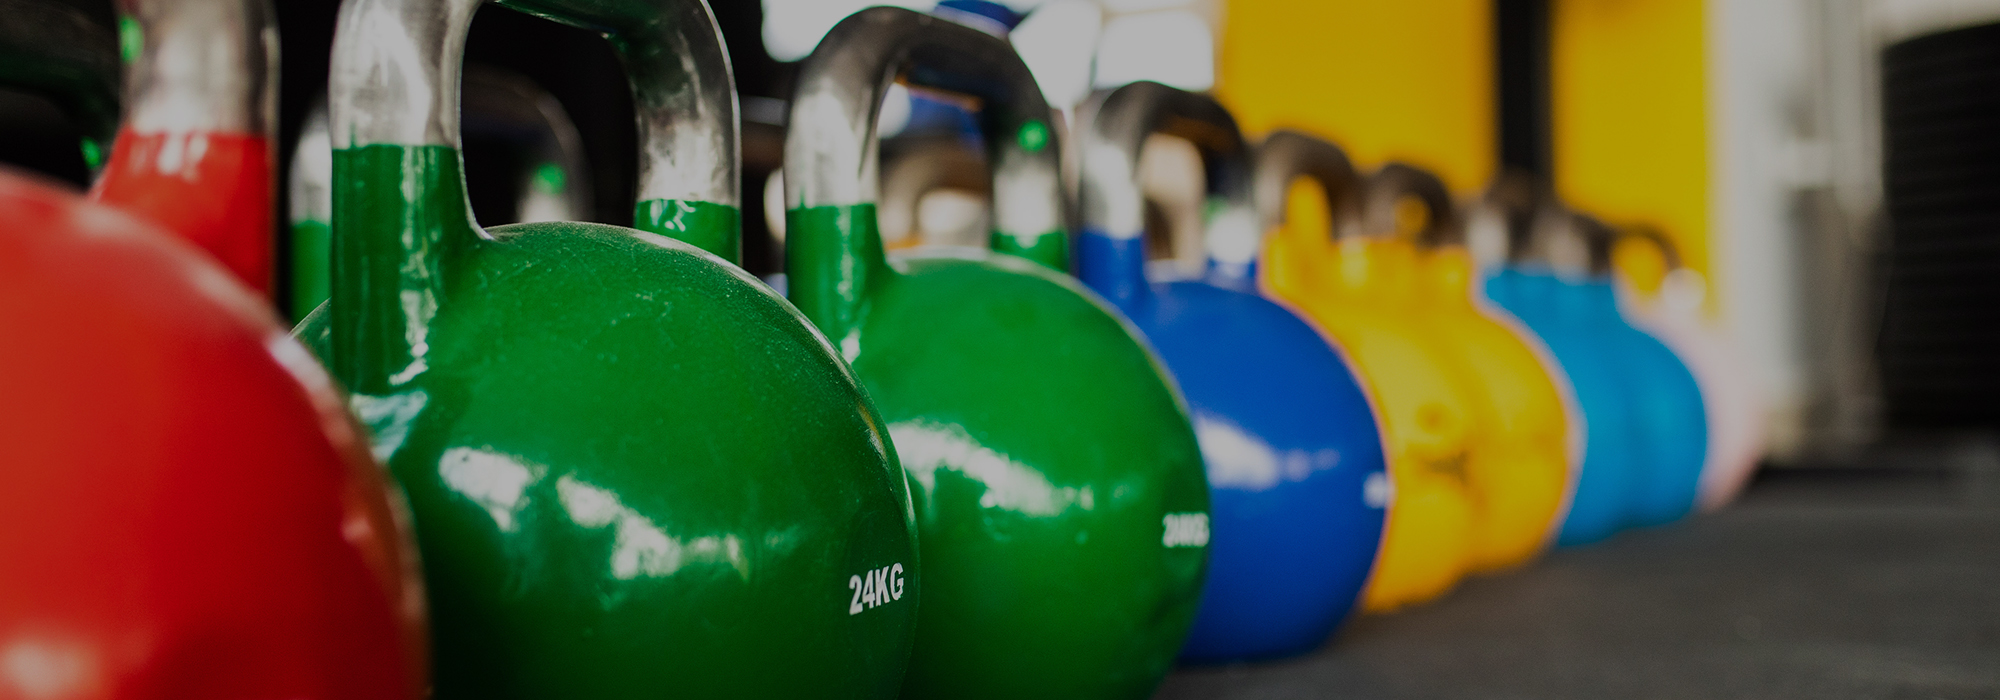 Looking To Go Sleeveless – Grab A Kettlebell!